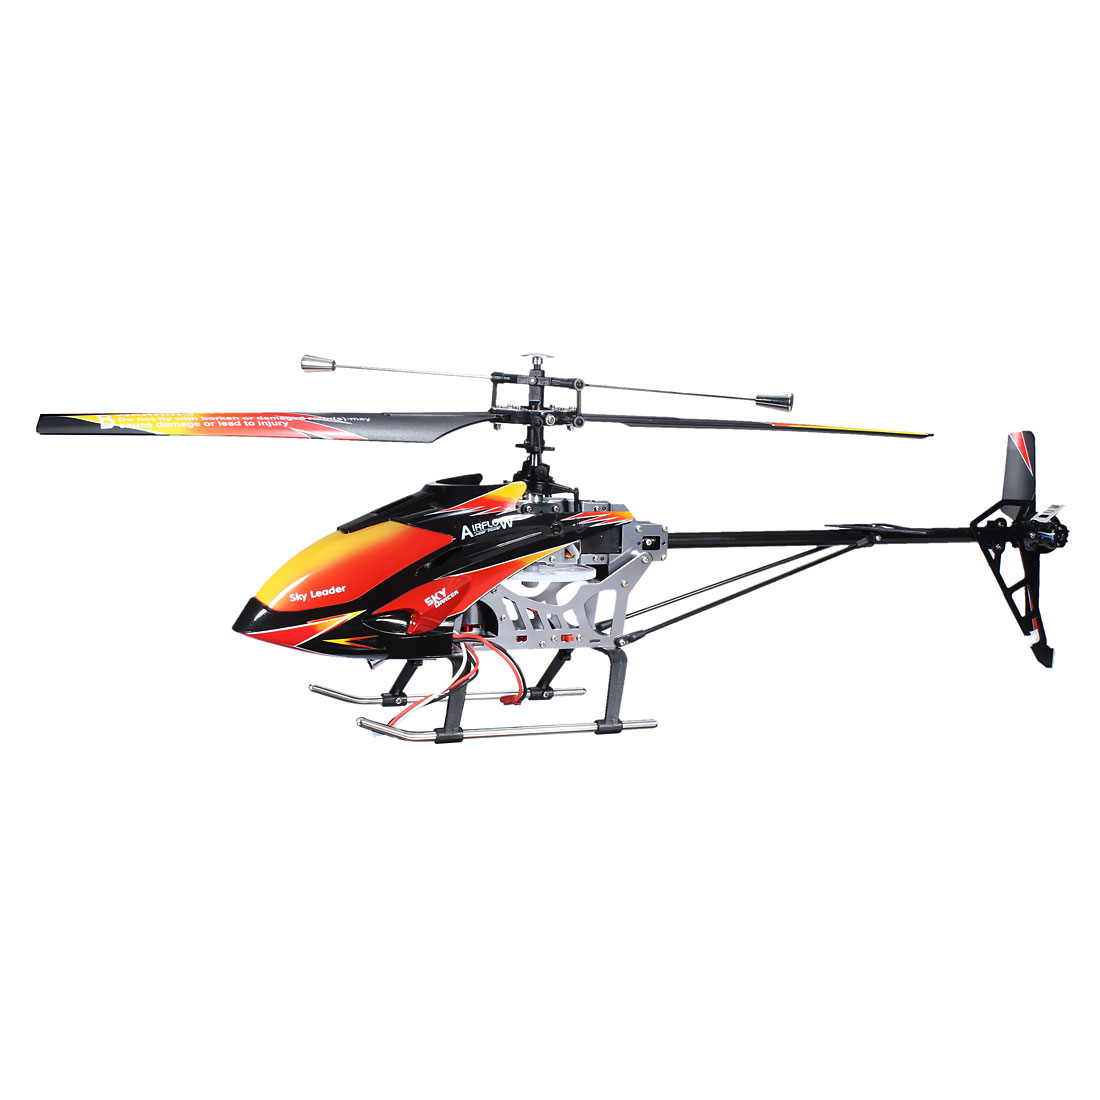 v913 helicopter parts with Wltoys V913 Brushless Version 2 4g 4ch Rc Helicopter Rtf on Wltoys V913 Main Brushless Rc Helicopter Bnf With 2600mah Battery as well 837804 32476793216 also Search together with Wltoys V913 Dual Brushless Helicopter Bnf With 2200mah Batteries moreover 151156242545.